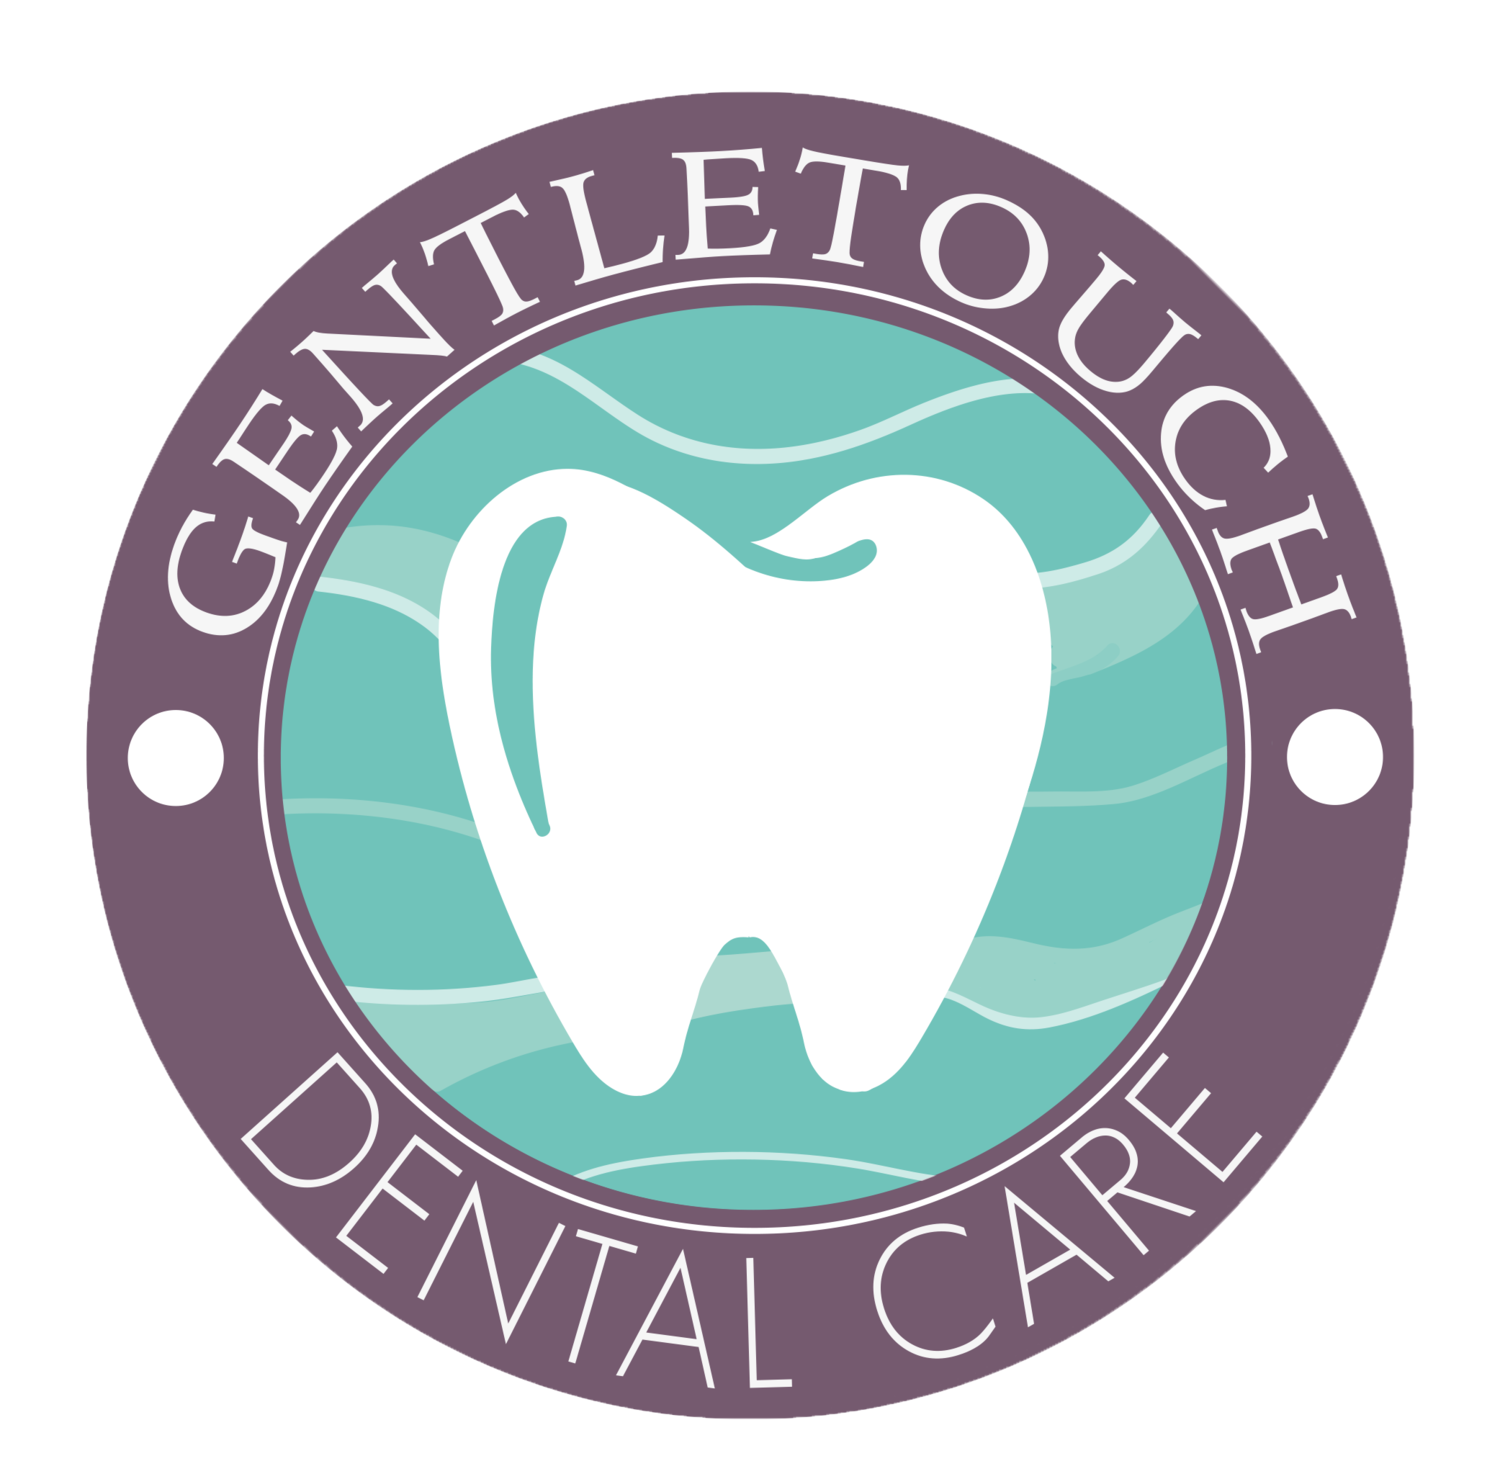 GentleTouch Dental Care